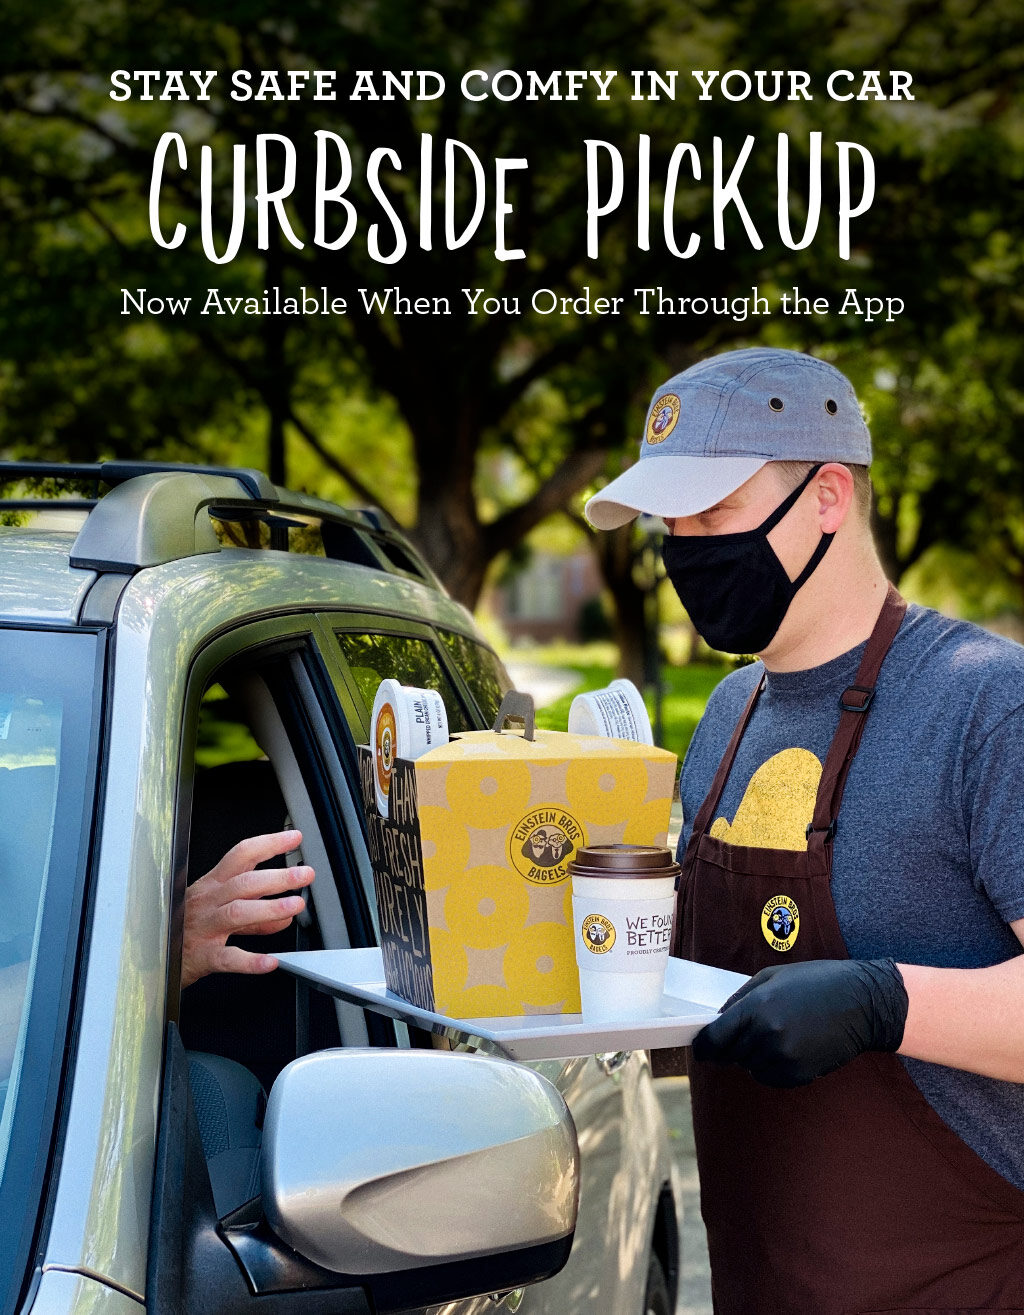 ROTATING SLIDER: Curbside Pickup available when you order ahead through the app.